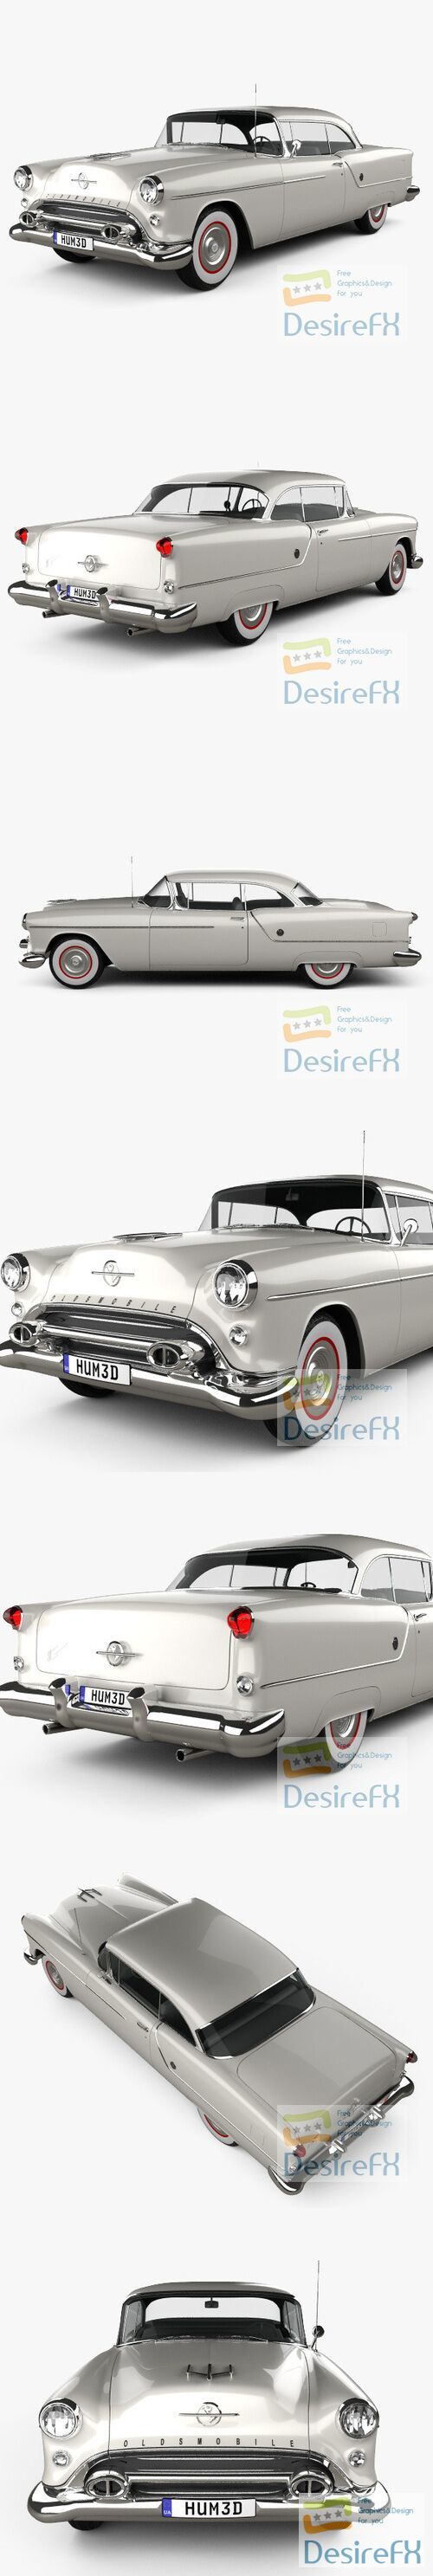 Oldsmobile 88 Super Holiday coupe 1954 3D Model